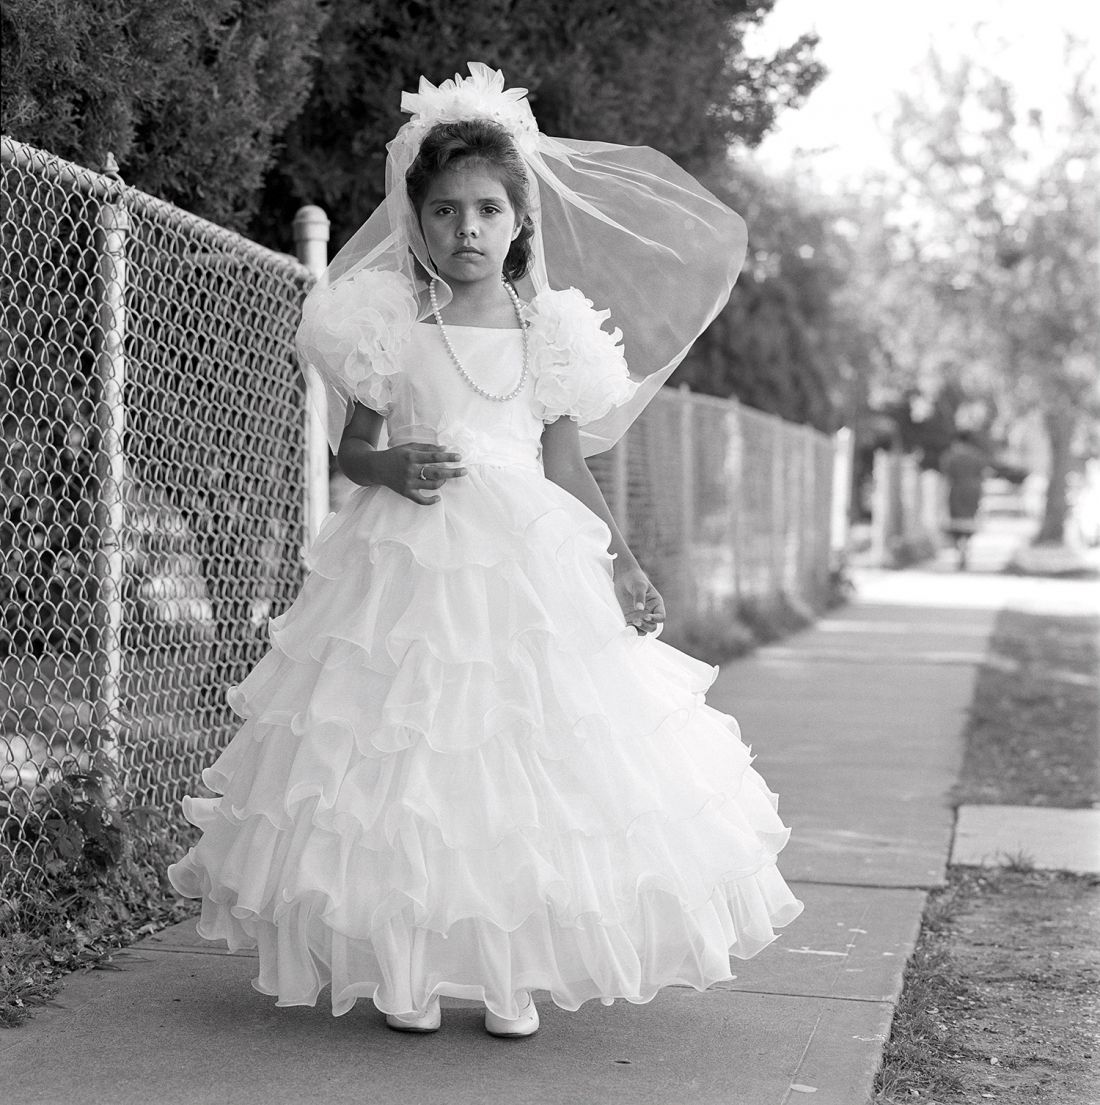 Laura Wilson, First Communion, Dallas, Texas May 22, 1988